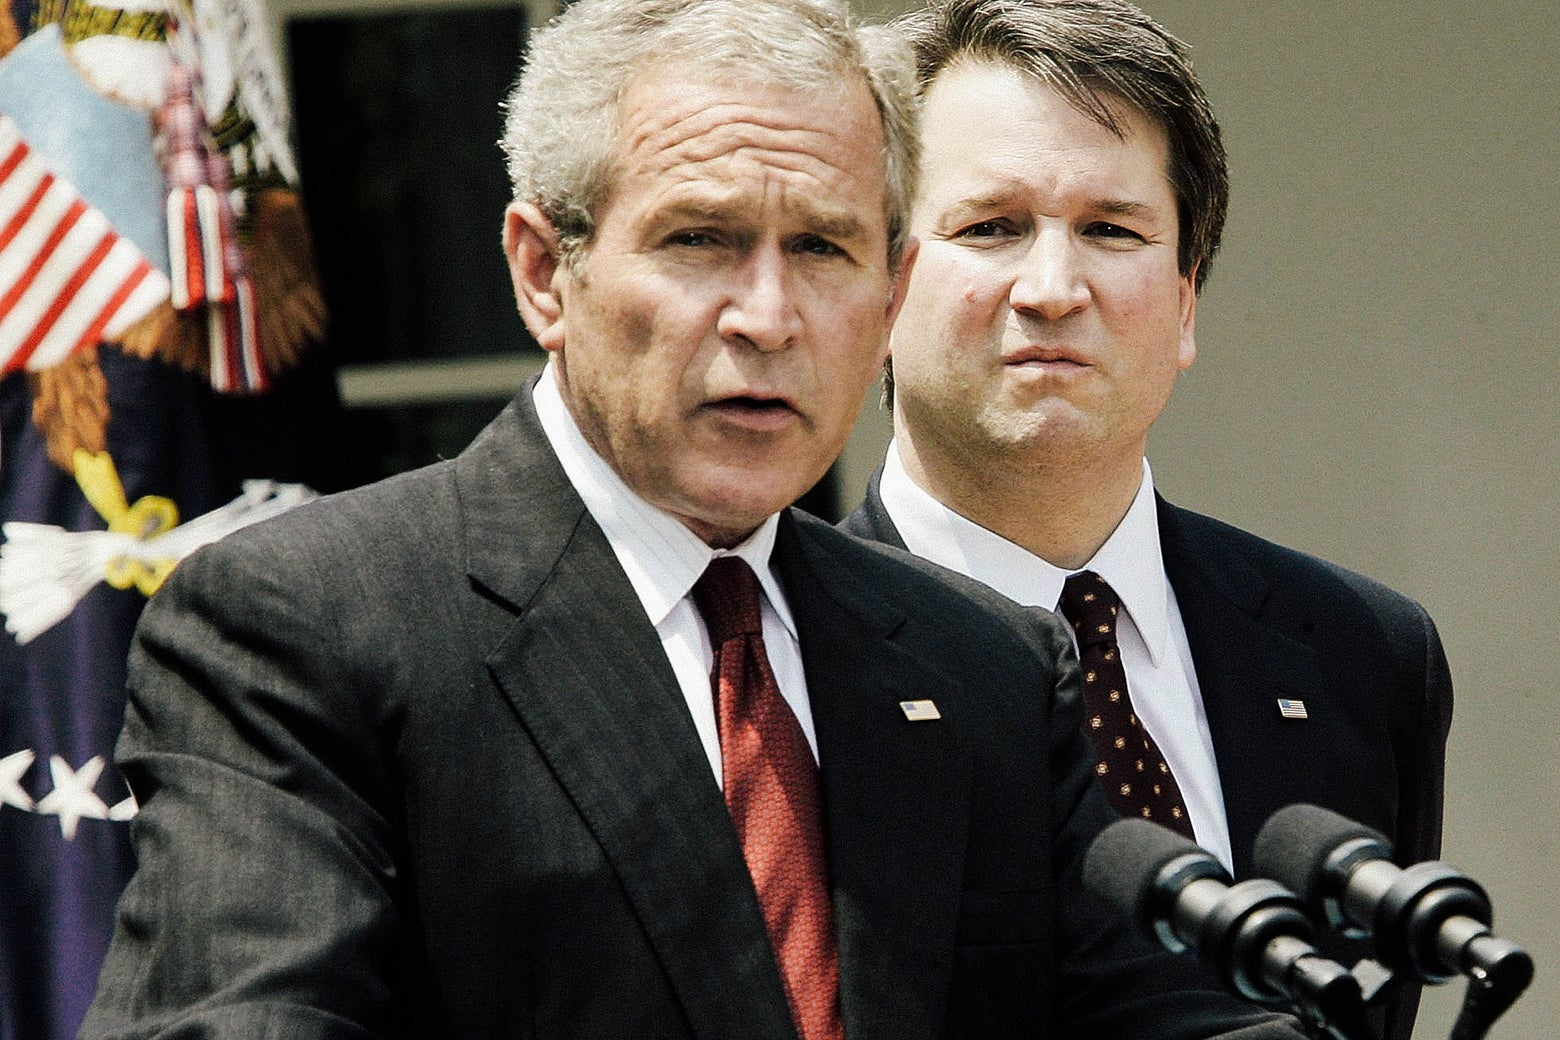 President George W. Bush speaks during the swearing-in ceremony for Brett Kavanaugh to be a judge to the U.S. Circuit Court of Appeals for the District of Columbia on June 1, 2006.